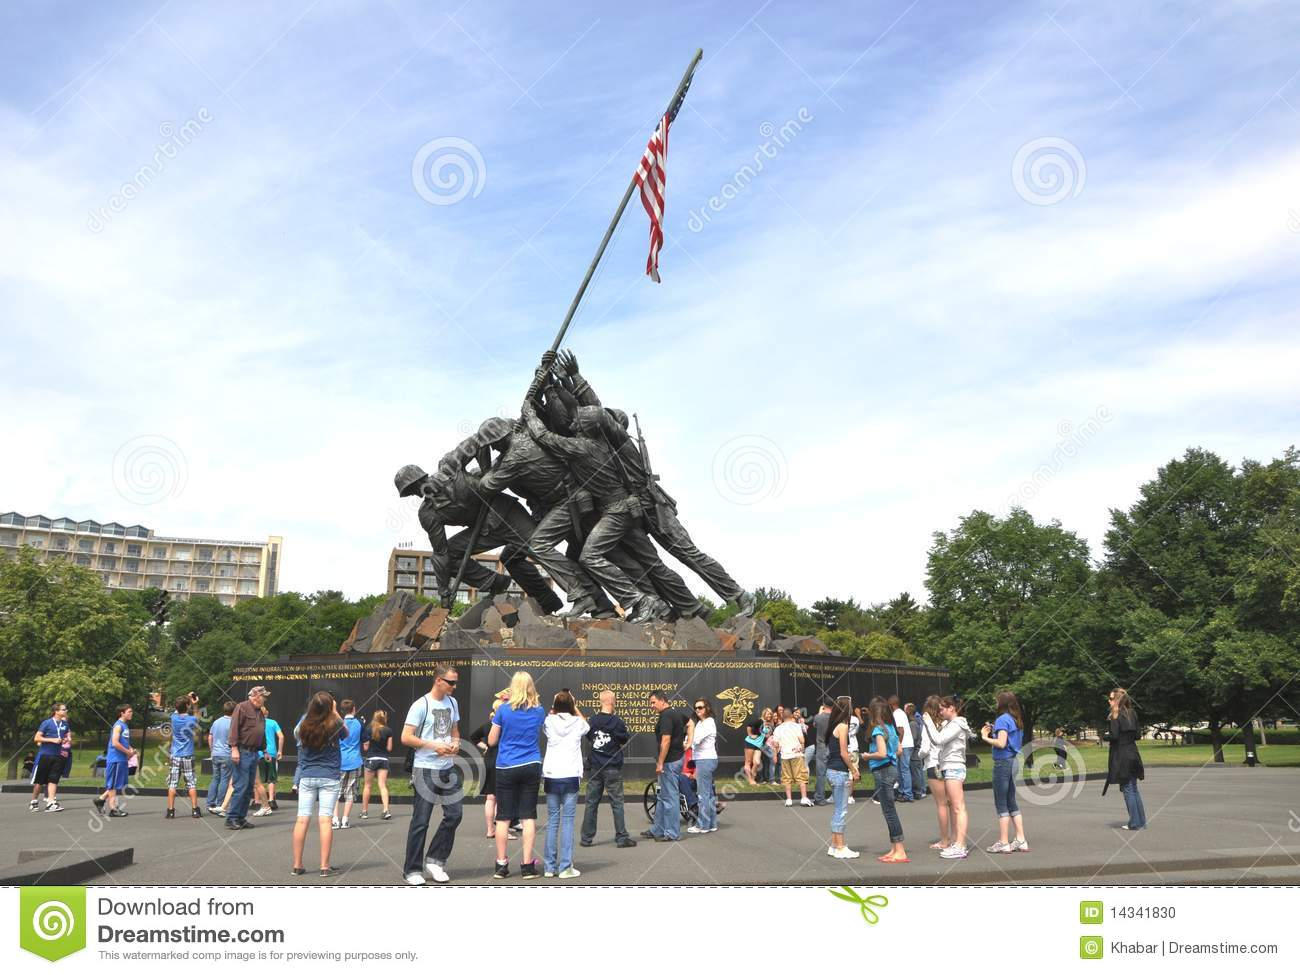 an introduction to the marine corp memorial in the united states The marine corps war memorial the marine corps war memorial stands as a symbol of this grateful nation's esteem for the honored dead of the us marine corps while the statue depicts one of the most iconic photos of world war ii, the memorial is dedicated to all marines who have given their lives in the.